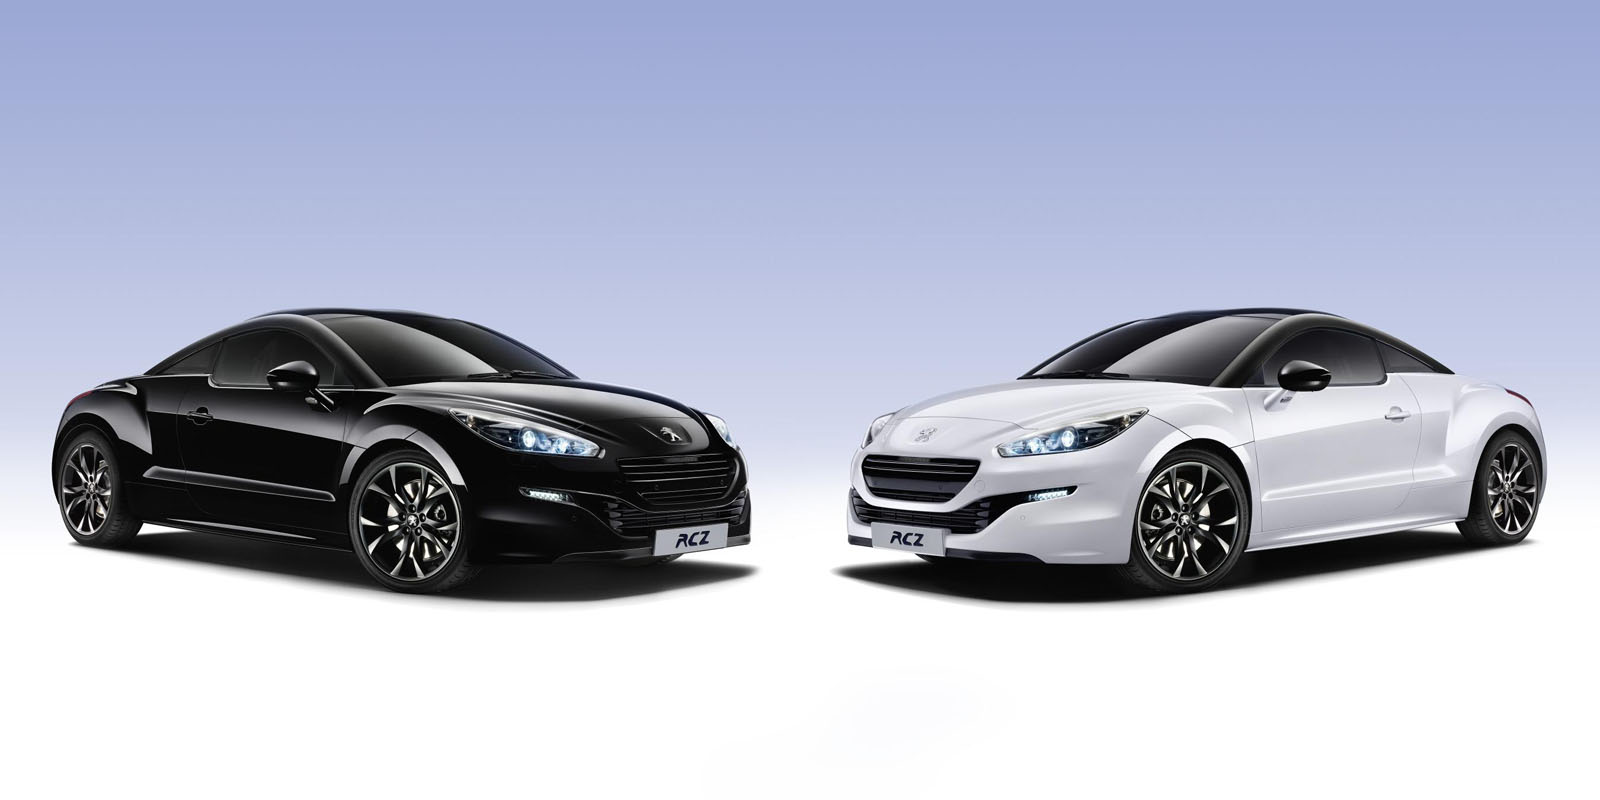 New Peugeot RCZ Magnetic